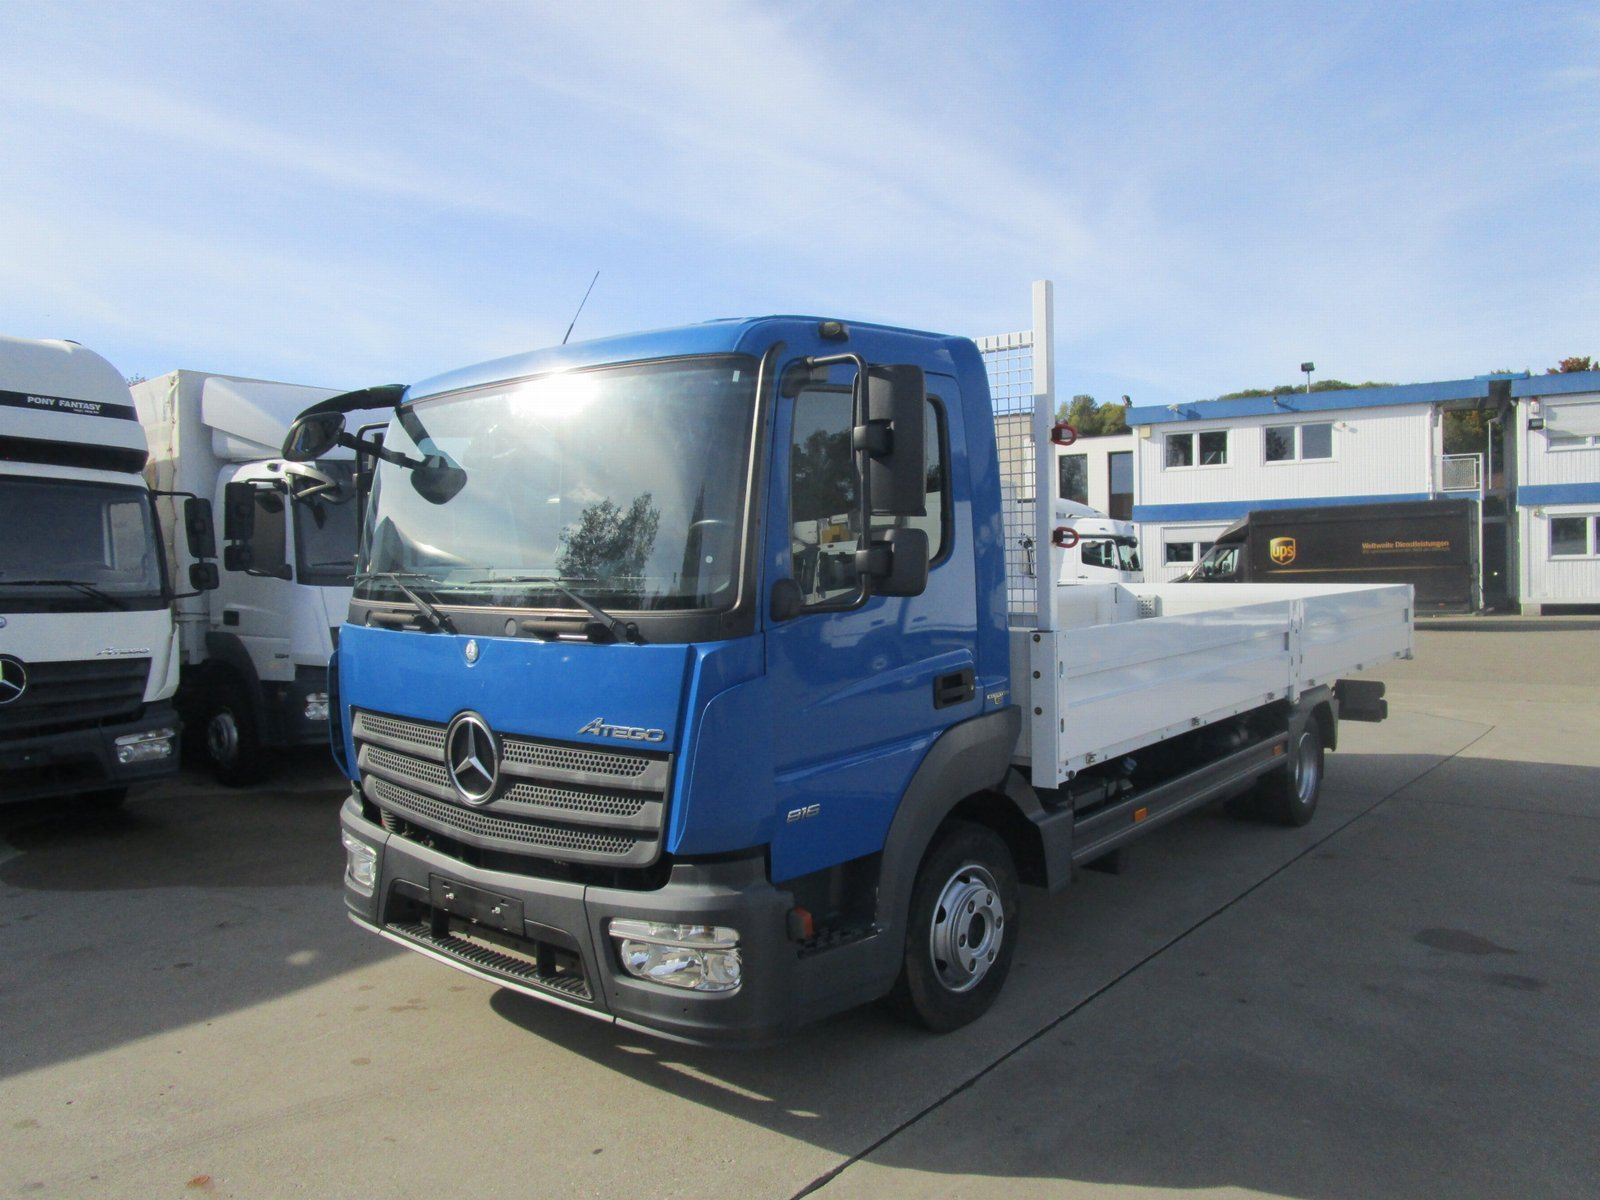 ATEGO IV 816 Fahrgestell RS 4.220 mm